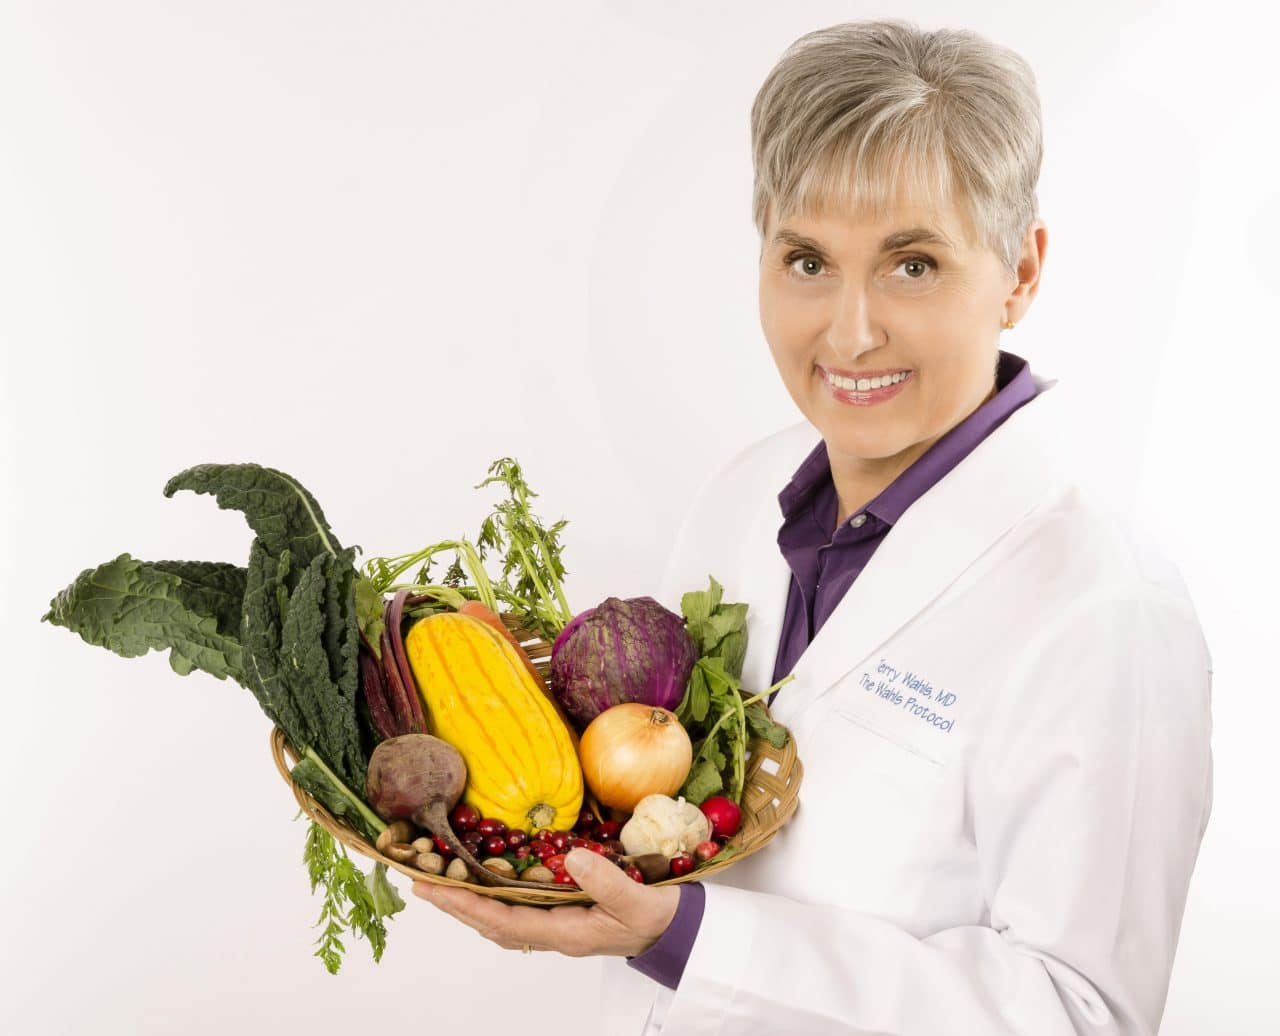 Dr. Terry Wahls. ©2013 Jonathan David Sabin Infinity Photographic Productions. All Rights Reserved.